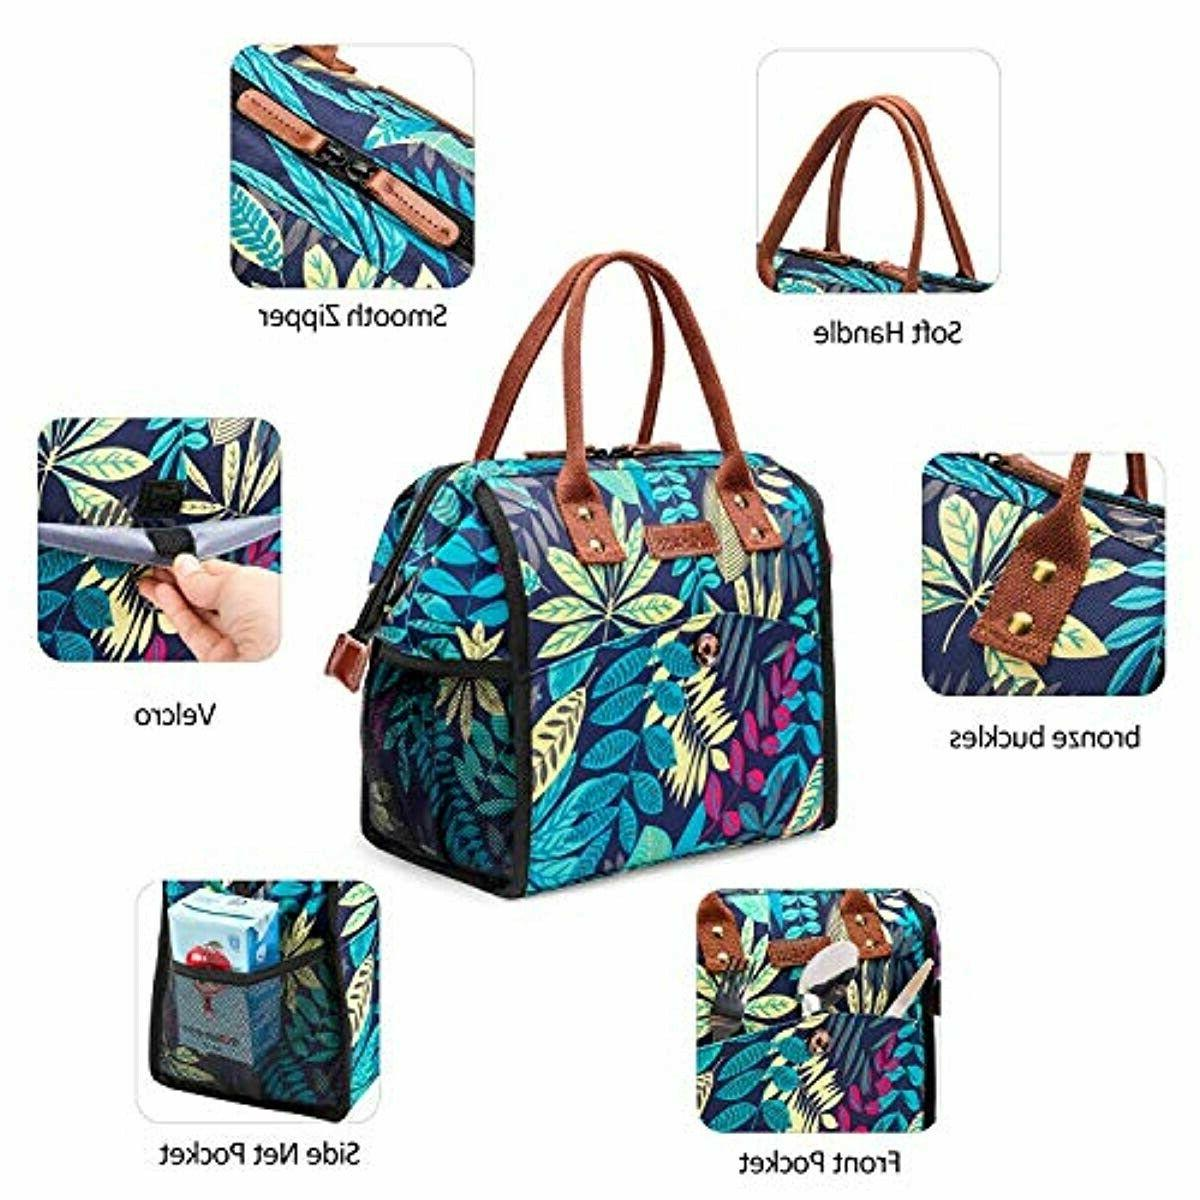 LOKASS Bag Tote Insulated Lunch Box Water-resistant T